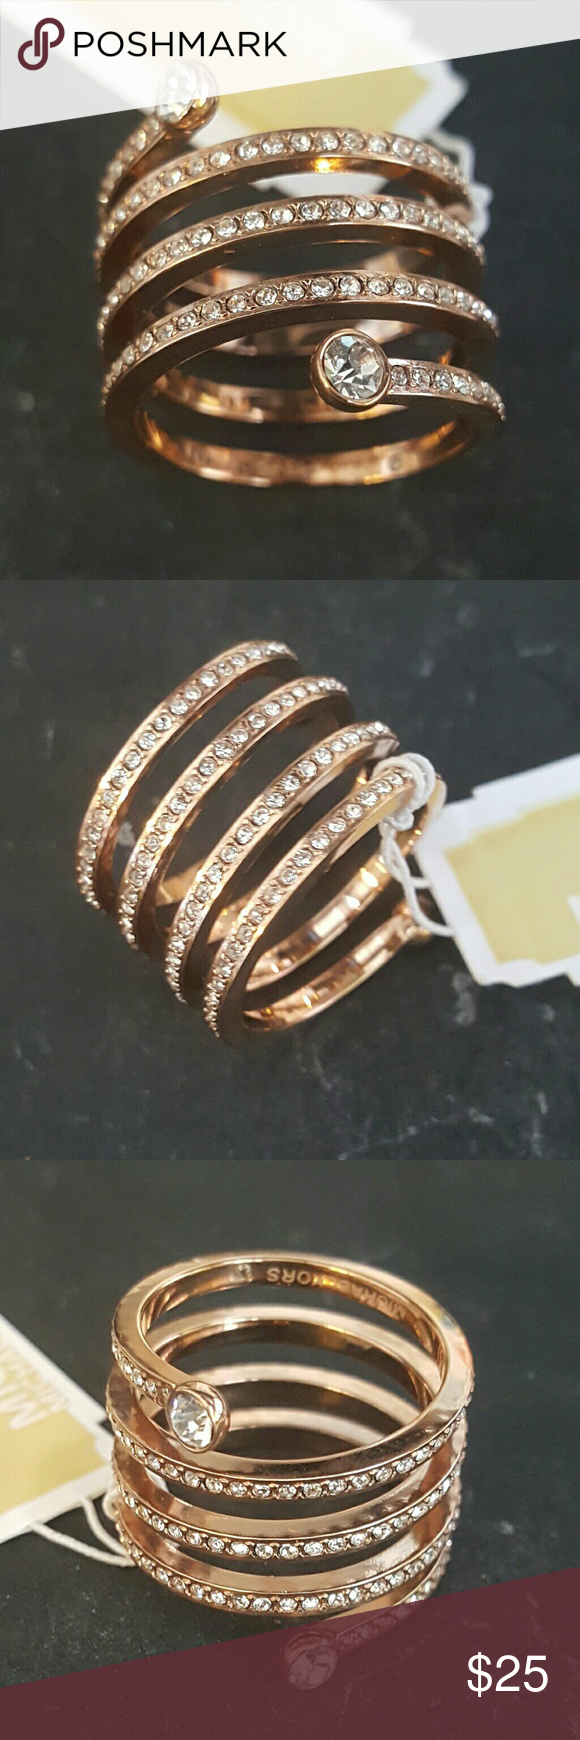 7751e26d76344 Michael Kors Pave Rose Gold Tone Coil Ring MKJ4724 Rose Gold Tone Size 8  Stainless steel